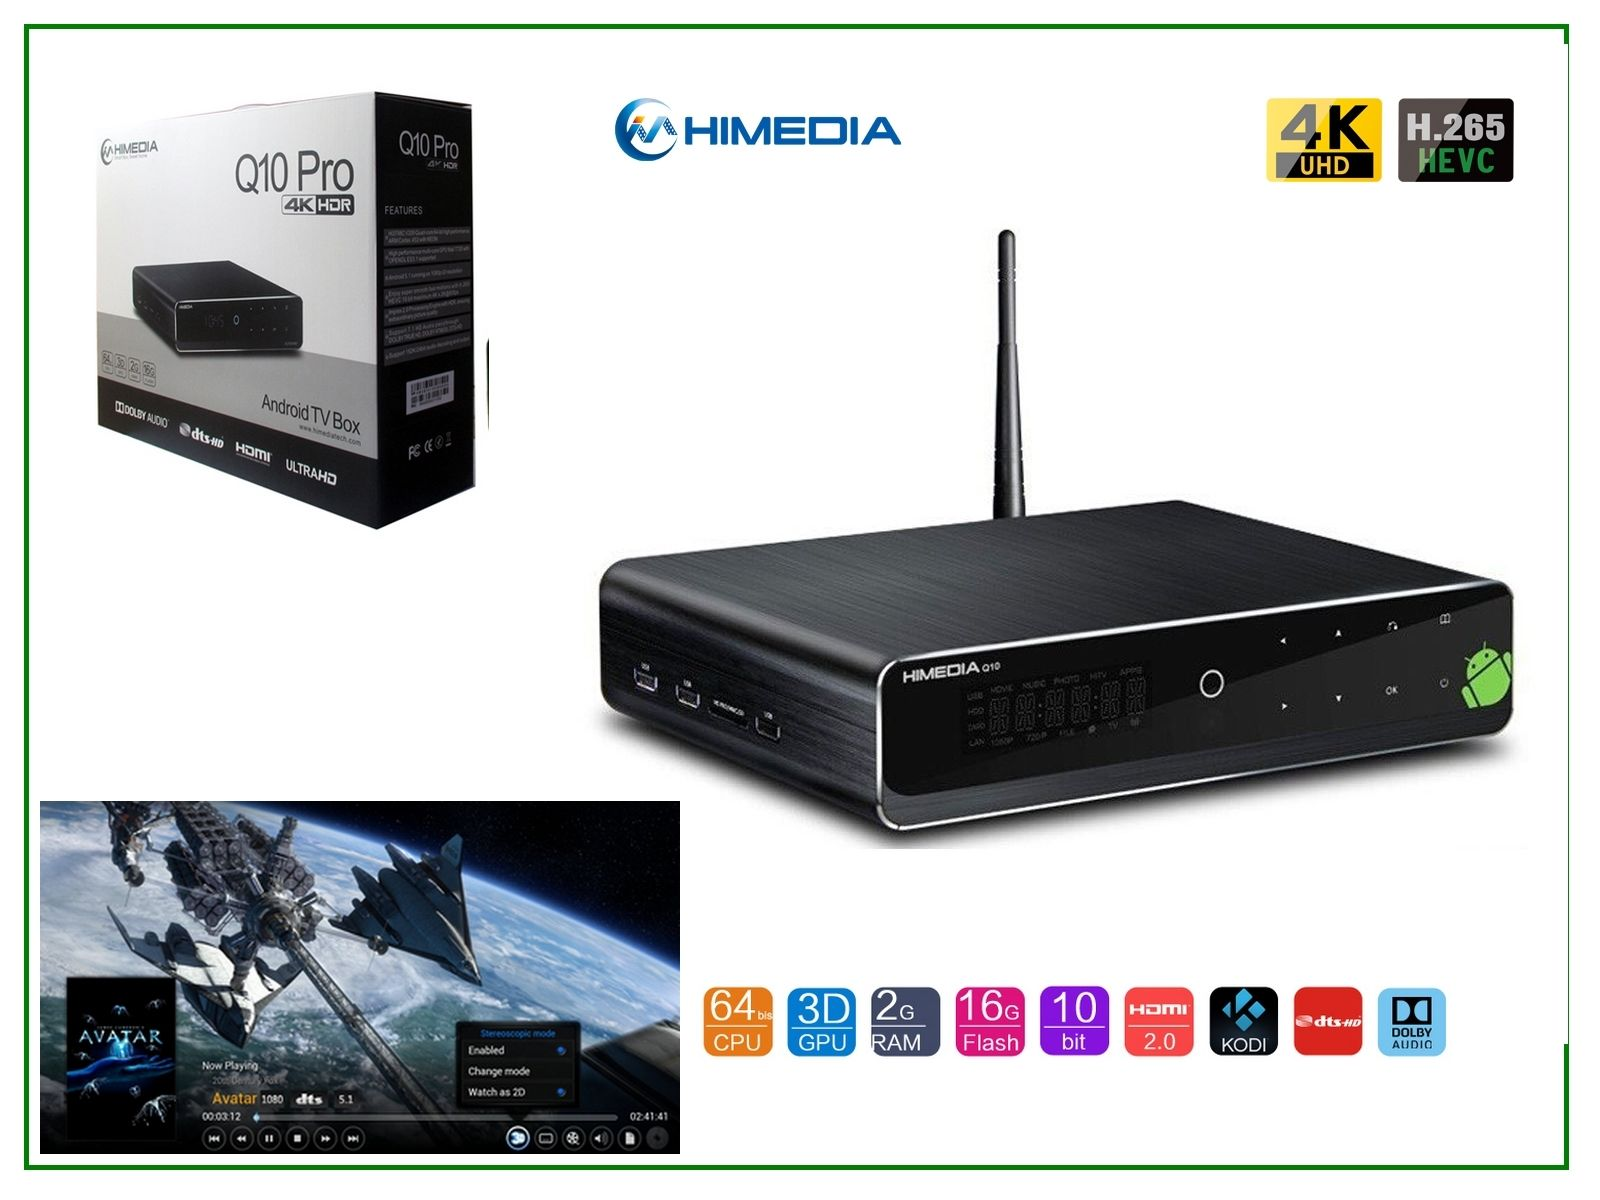 Himedia Q10 Pro 4k (Ultra HD) 3D Media Player Android Smart TV Box/Mini PC